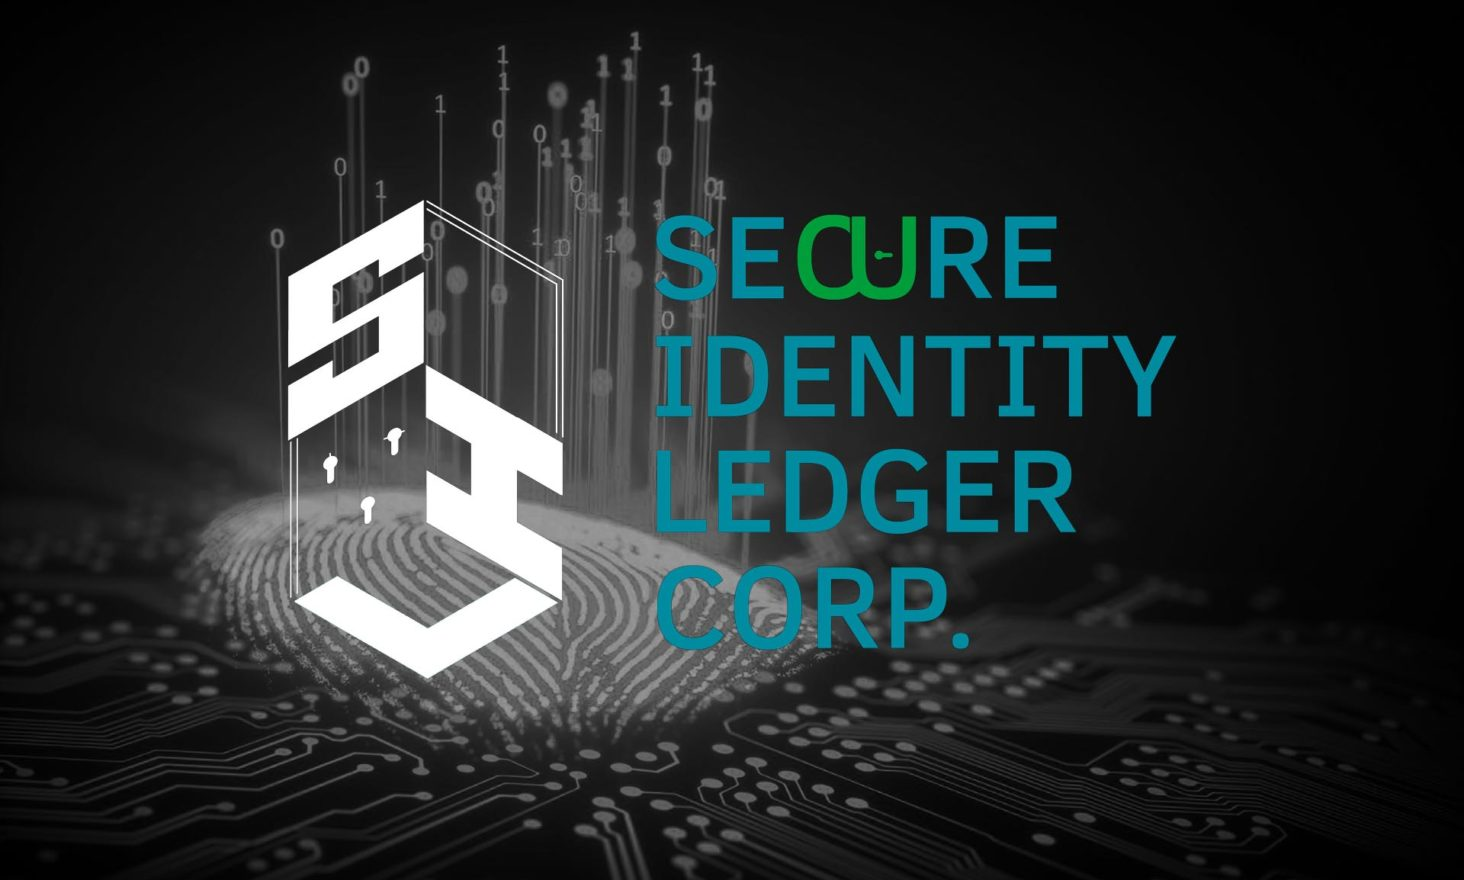 Secure Identity Ledger Corporation Goes Direct to Consumer with Initial Coin Offering